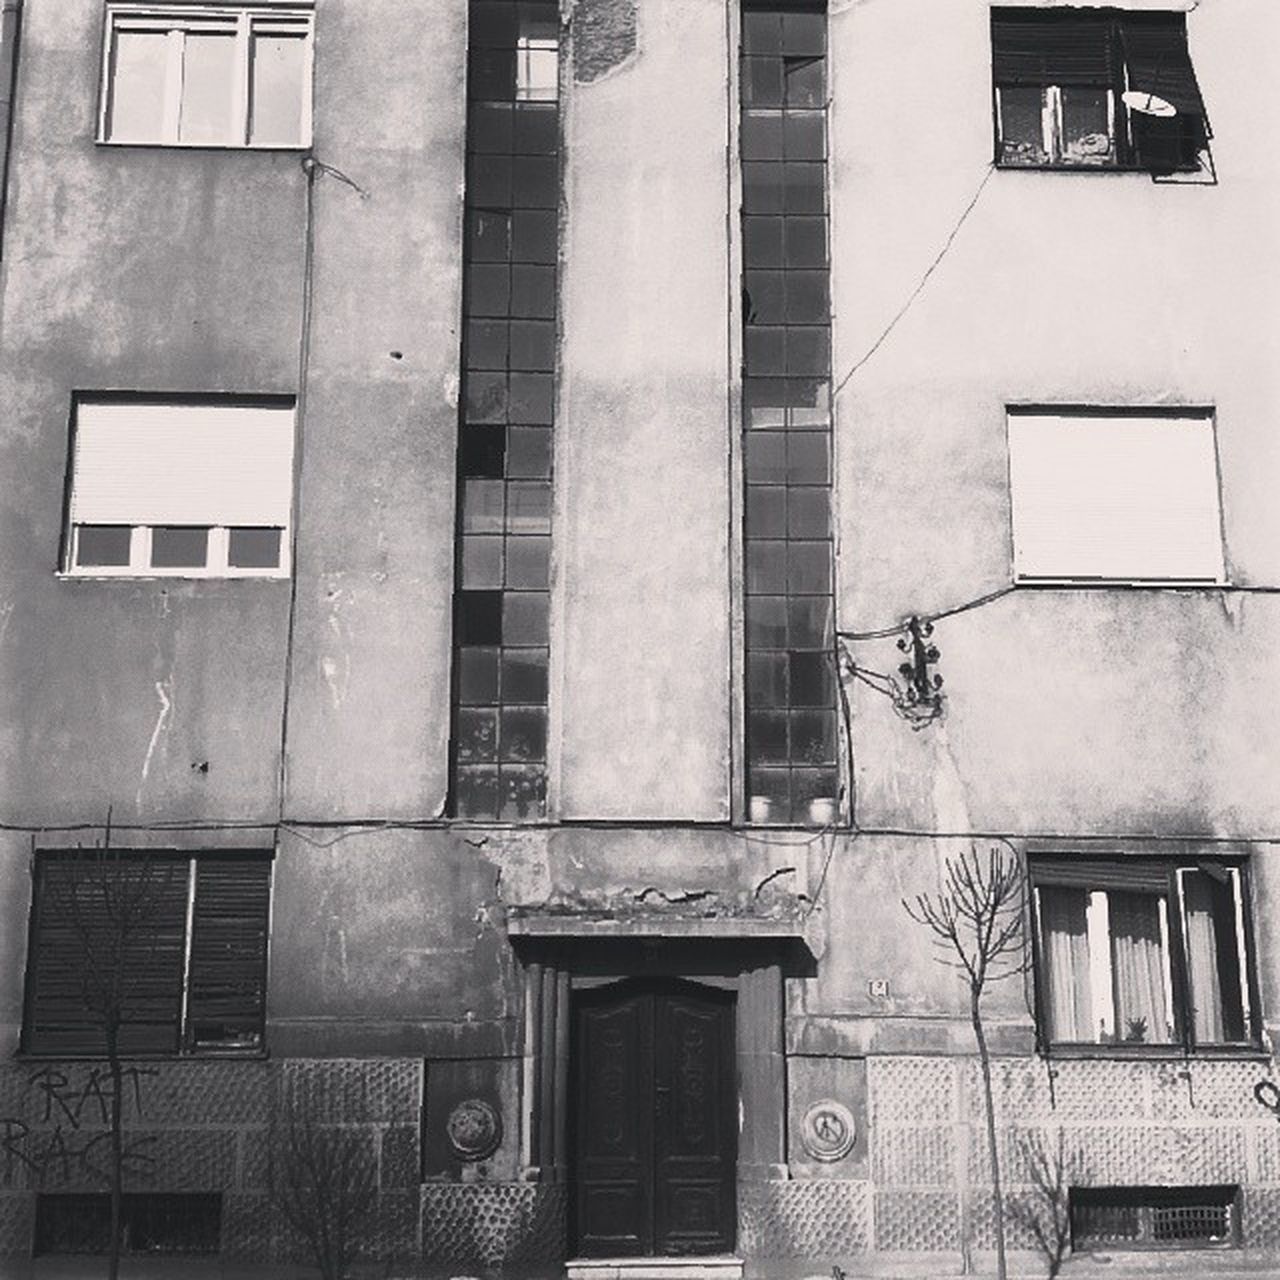 building exterior, architecture, window, built structure, building, outdoors, residential building, no people, day